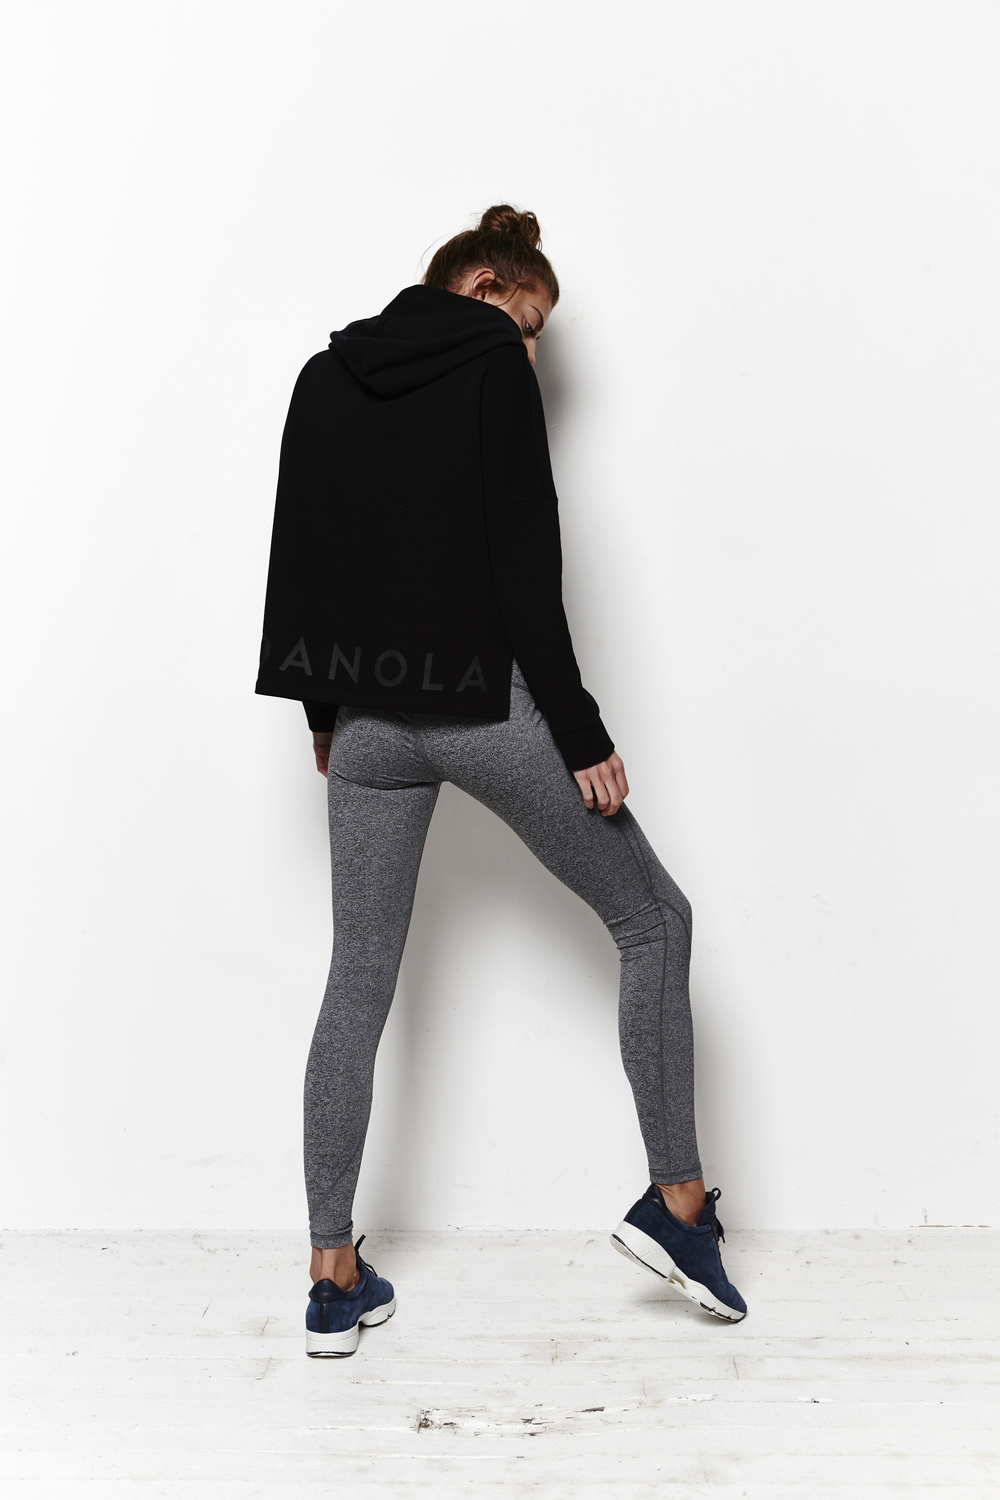 The ADANOLA Black on Black Hooded Sweat is a great option for running outdoors, or chilling pictured here with the Premium Active Leggings.